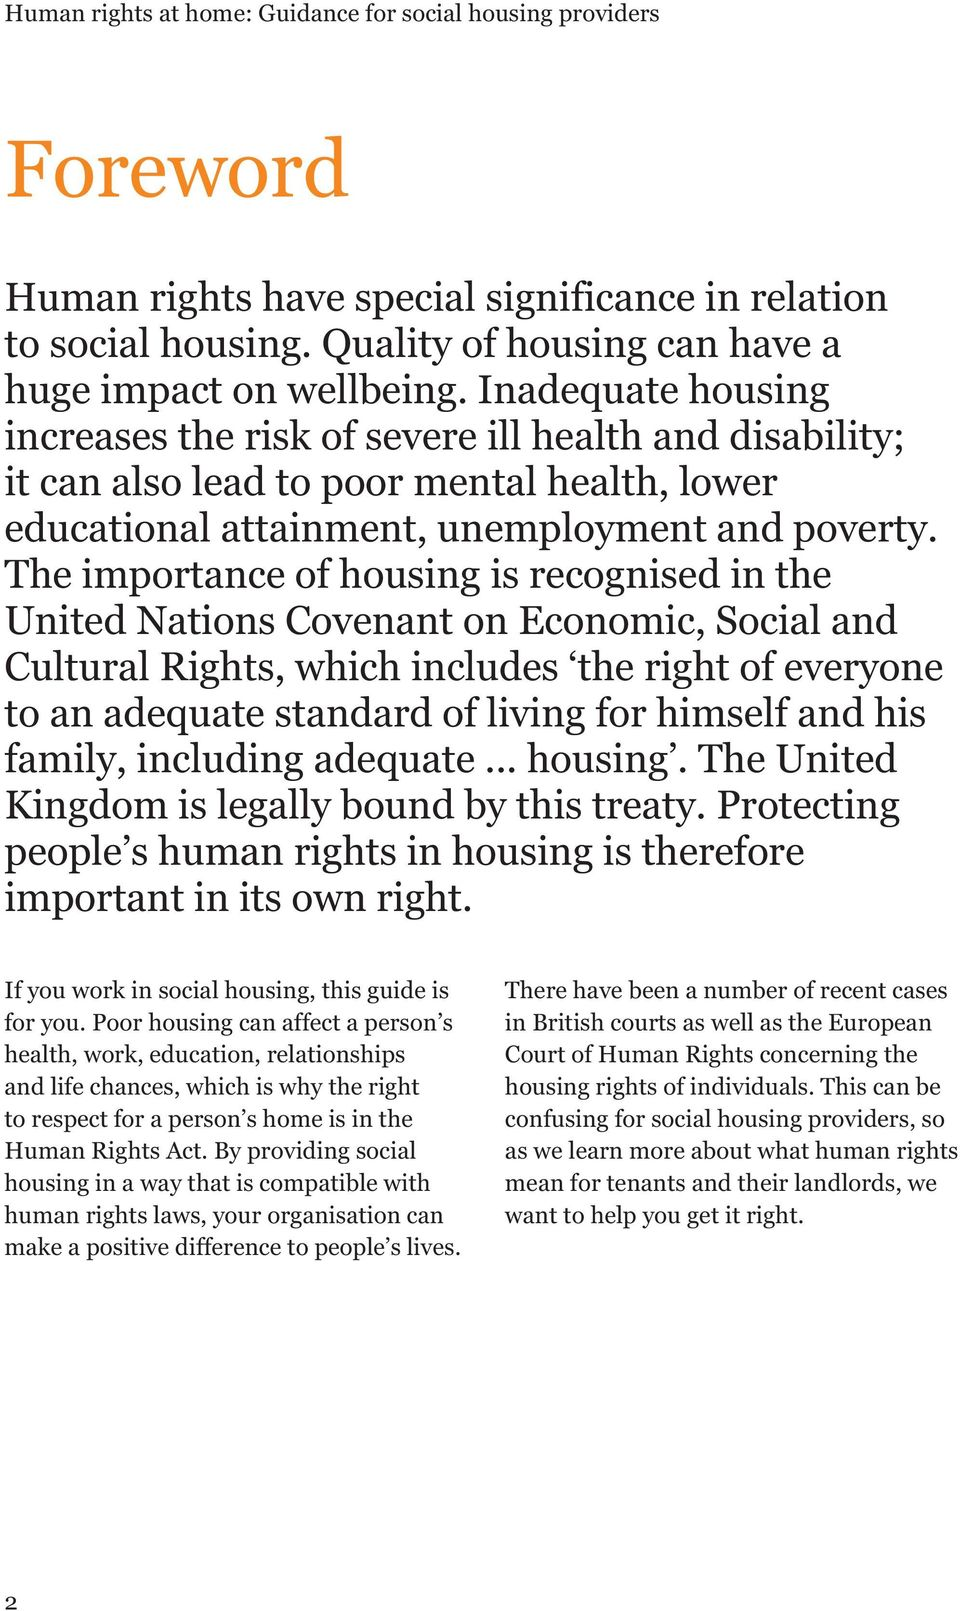 The importance of housing is recognised in the United Nations Covenant on Economic, Social and Cultural Rights, which includes the right of everyone to an adequate standard of living for himself and